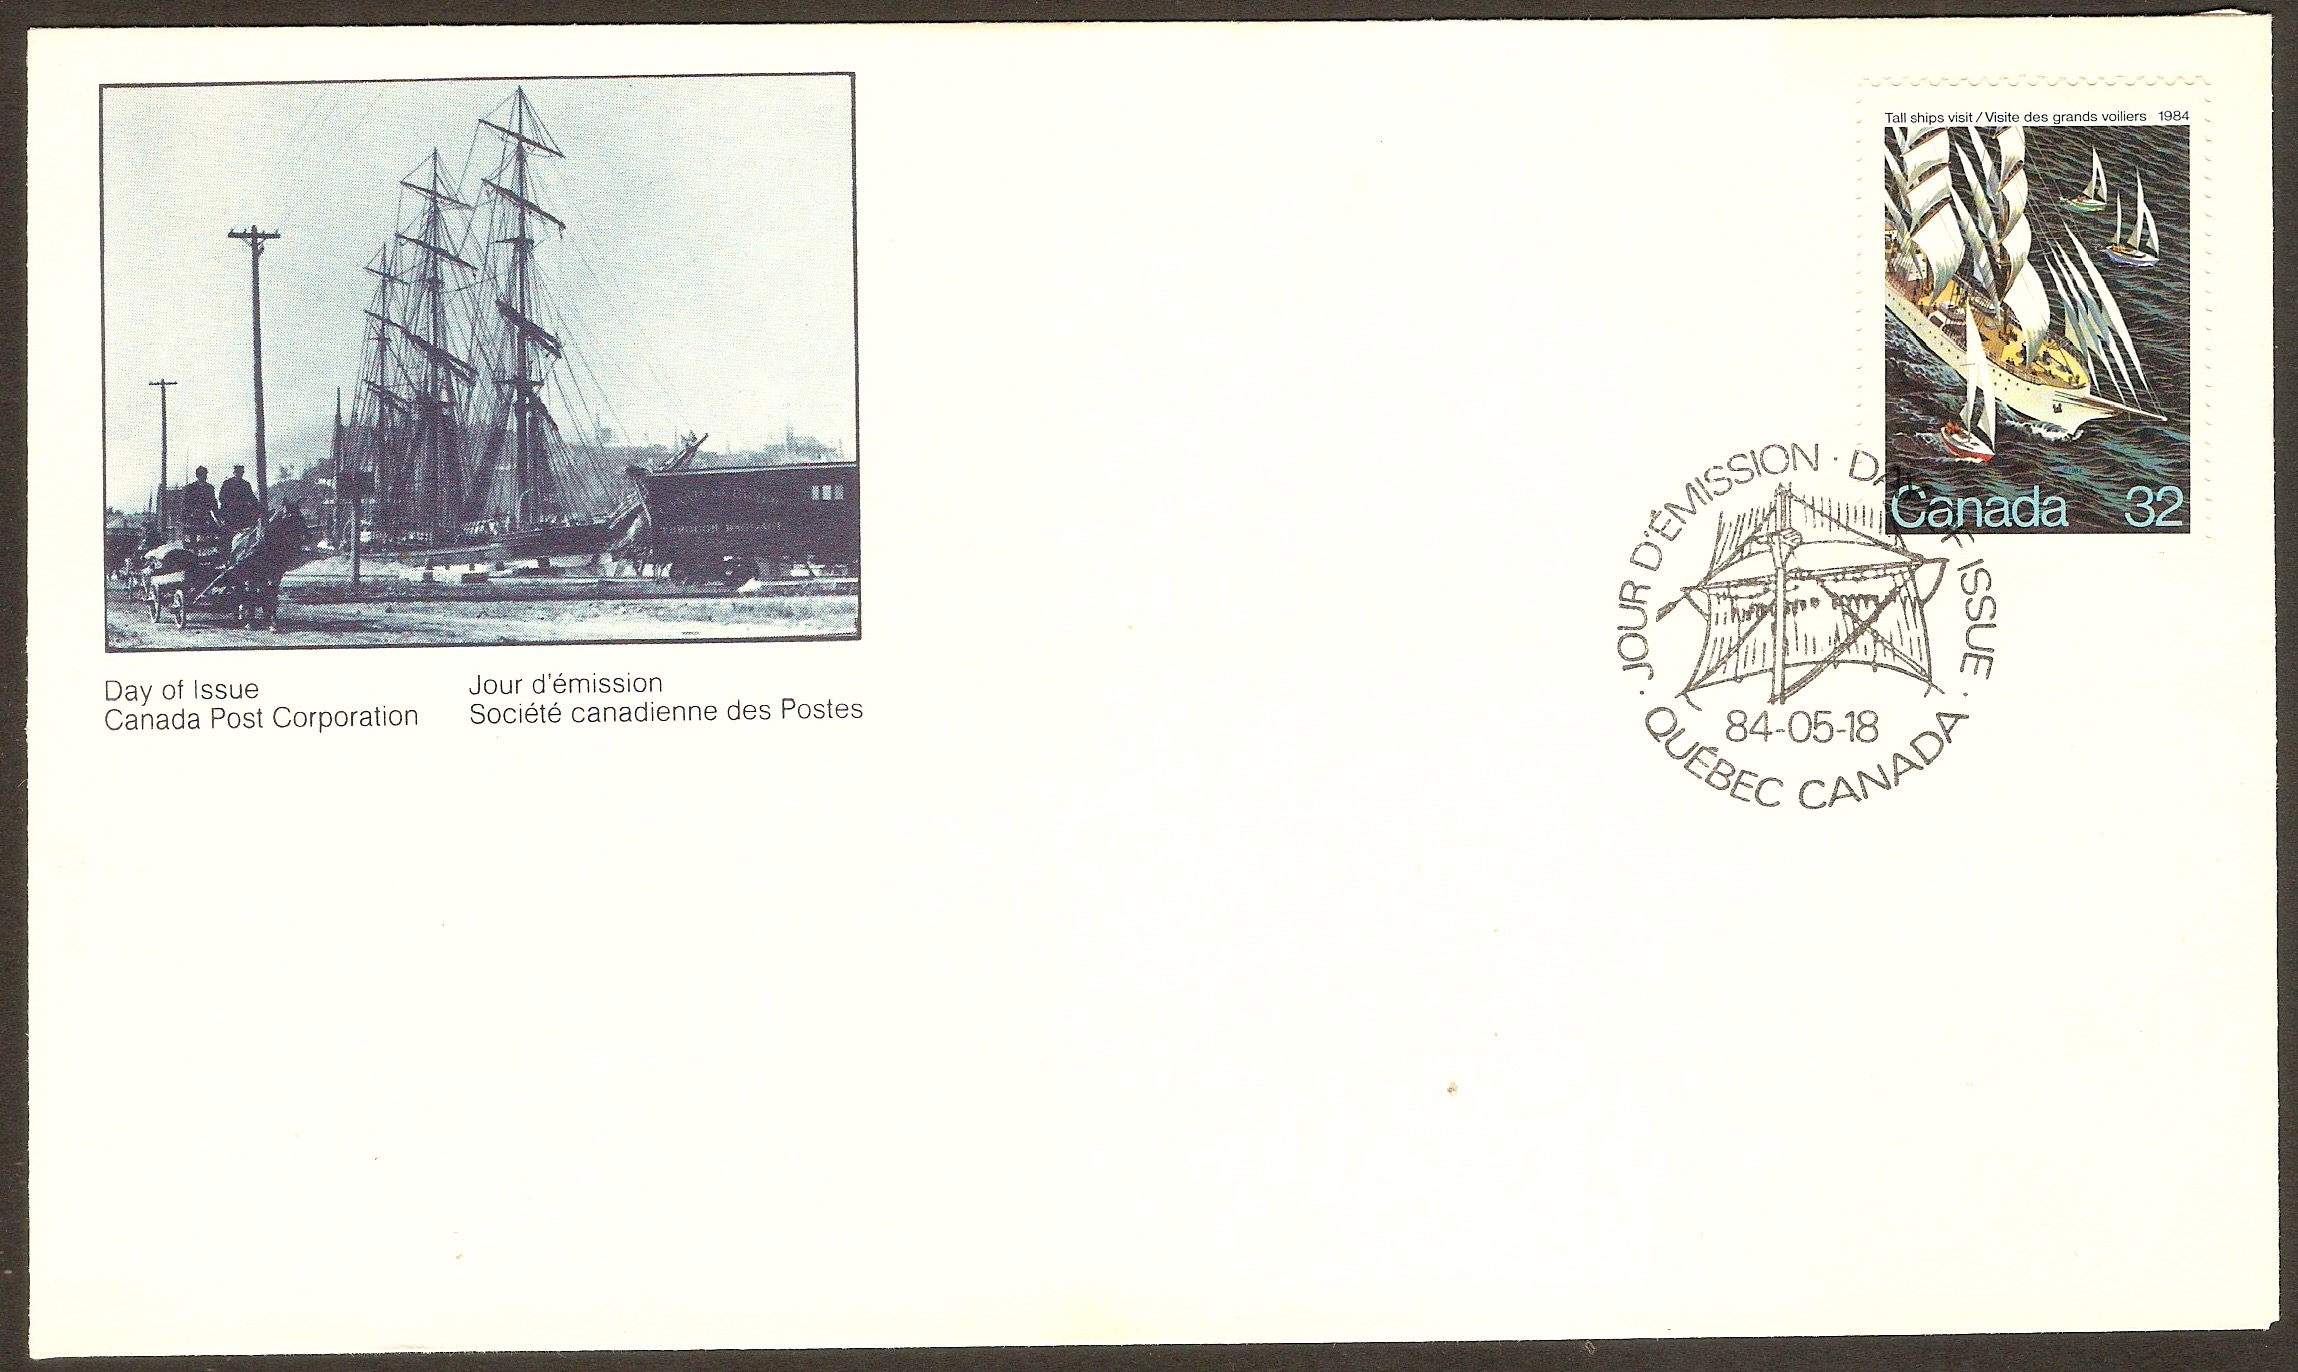 Canada 1984 Tall Ships Visit FDC.